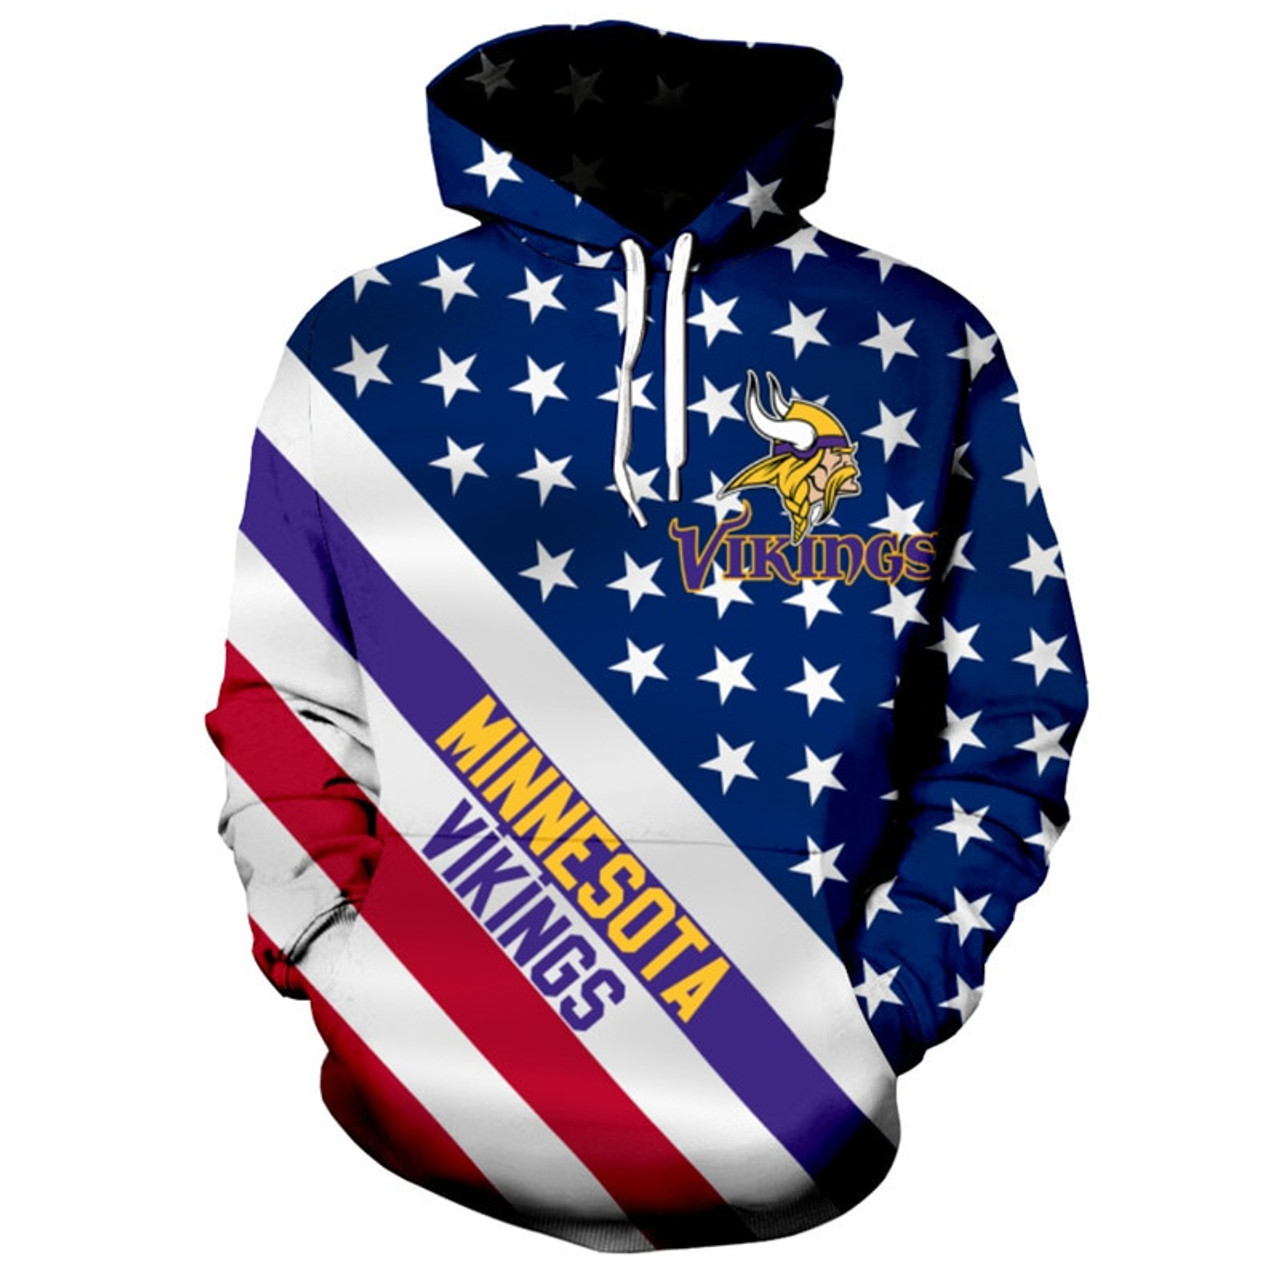 free shipping 6c2d5 a0a5a **(OFFICIALLY-LICENSED-N.F.L.MINNESOTA-VIKINGS/3D-GRAPHIC-PRINTED-PATRIOTIC-STARS  & STRIPES-PULLOVER-HOODIES/NICE-DETAILED-PREMIUM-CUSTOM-3D-GRAPHIC-P...